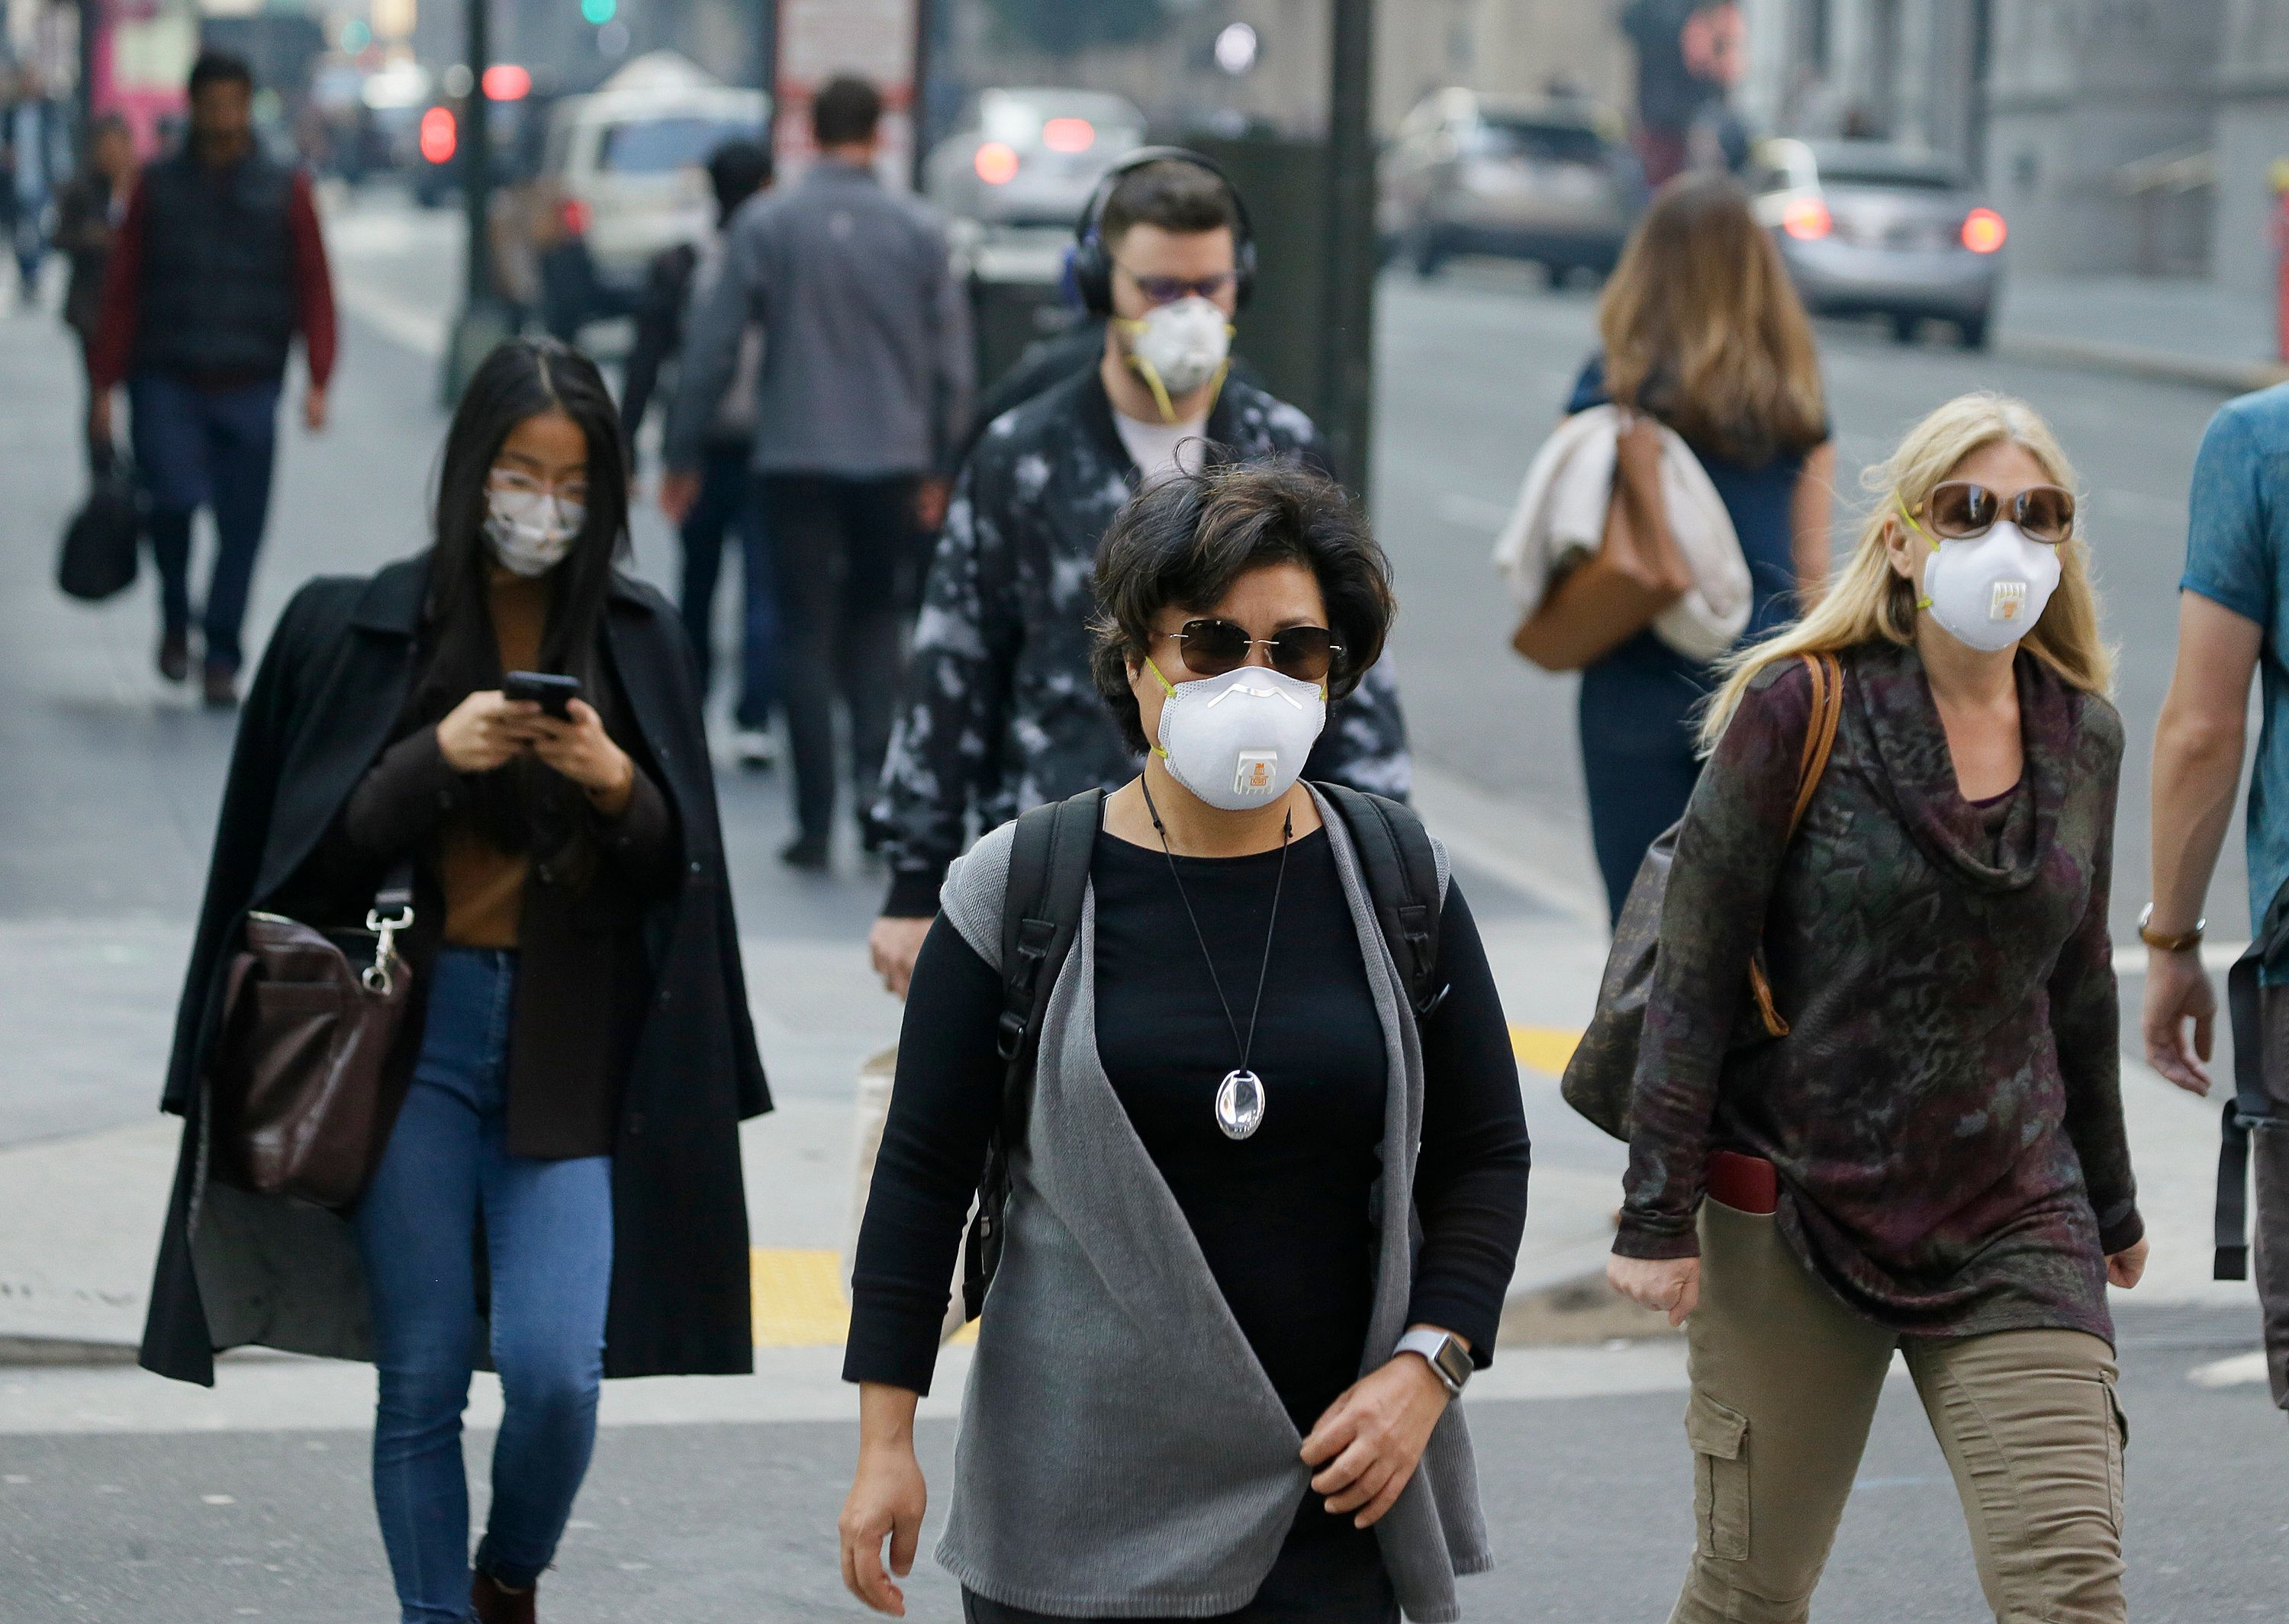 People wear masks while walking through the Financial District in the smoke-filled air Friday, Nov. 9, 2018, in San Francisco. Authorities have issued an unhealthy air quality alert for parts of the San Francisco Bay Area as smoke from a massive wildfire drifts south, polluting the air. Officials say the thousands of structures in the town of Paradise, 180 miles (290 kilometers) northeast of San Francisco, were destroyed by the blaze that has charred 110 square miles (285 square kilometers). (AP Photo/Eric Risberg)